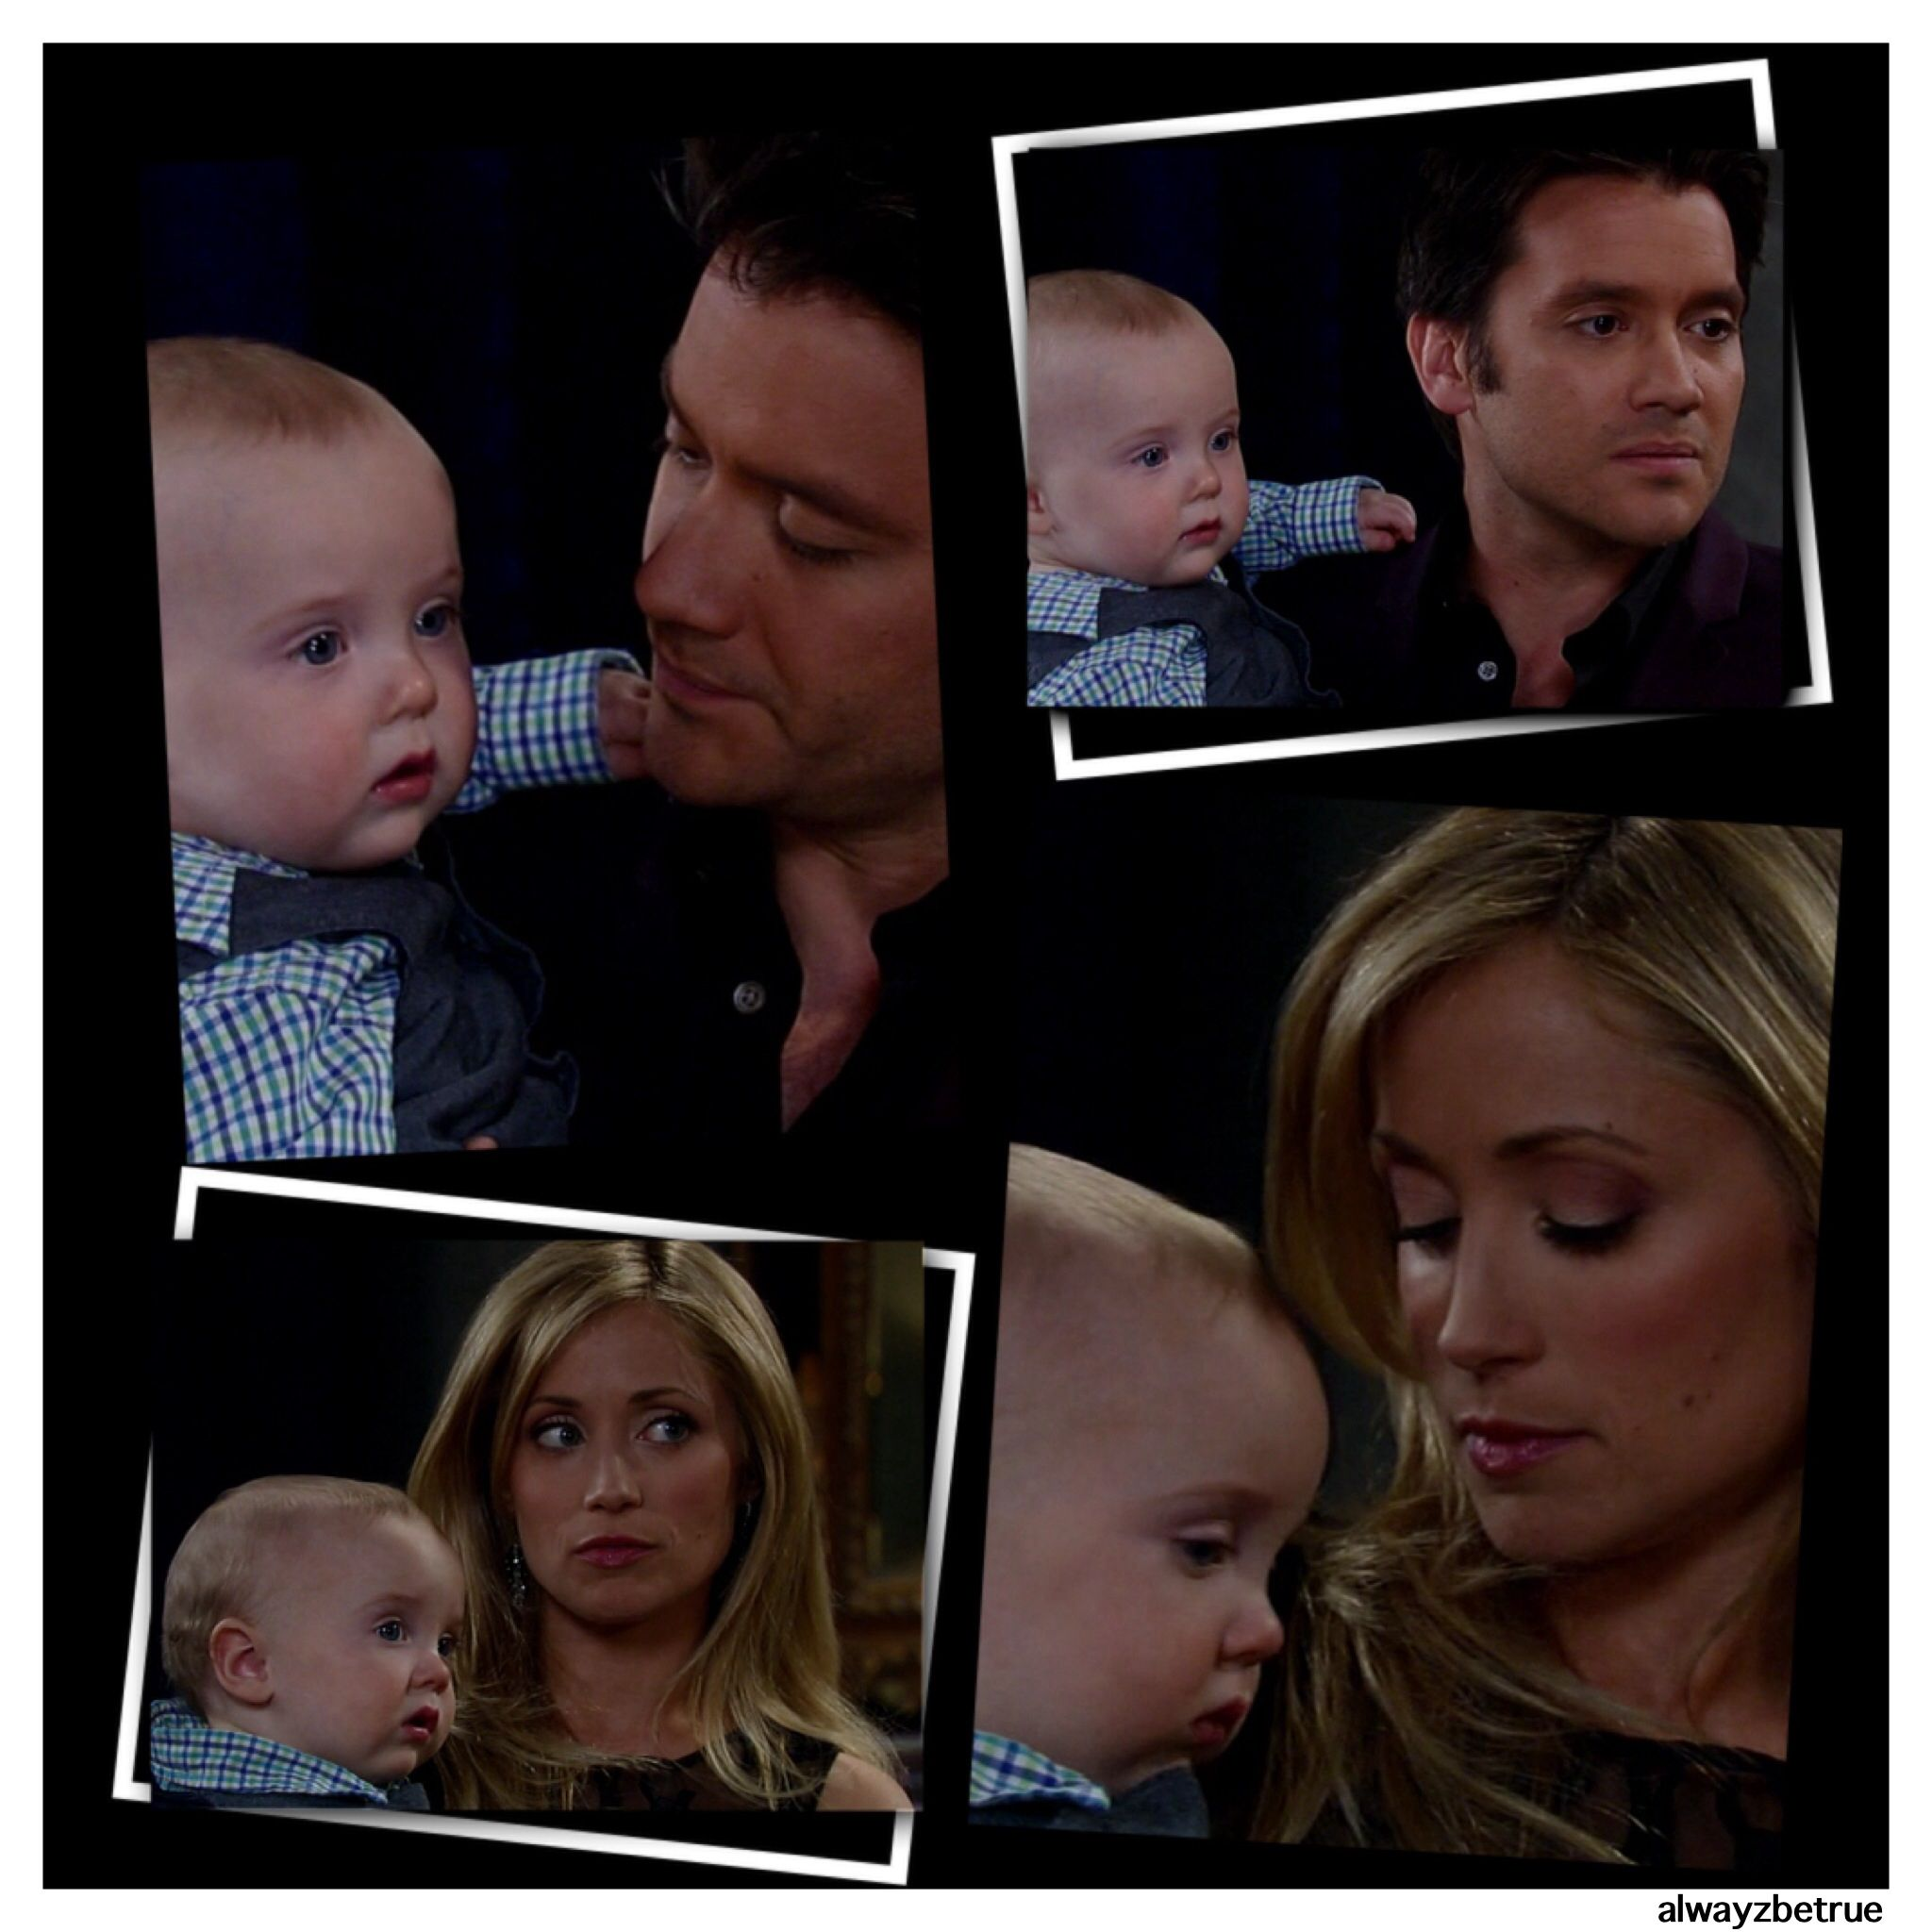 #GH *Fans if used (re-pinned) please keep/give credit (alwayzbetrue)* #Lante with Ben